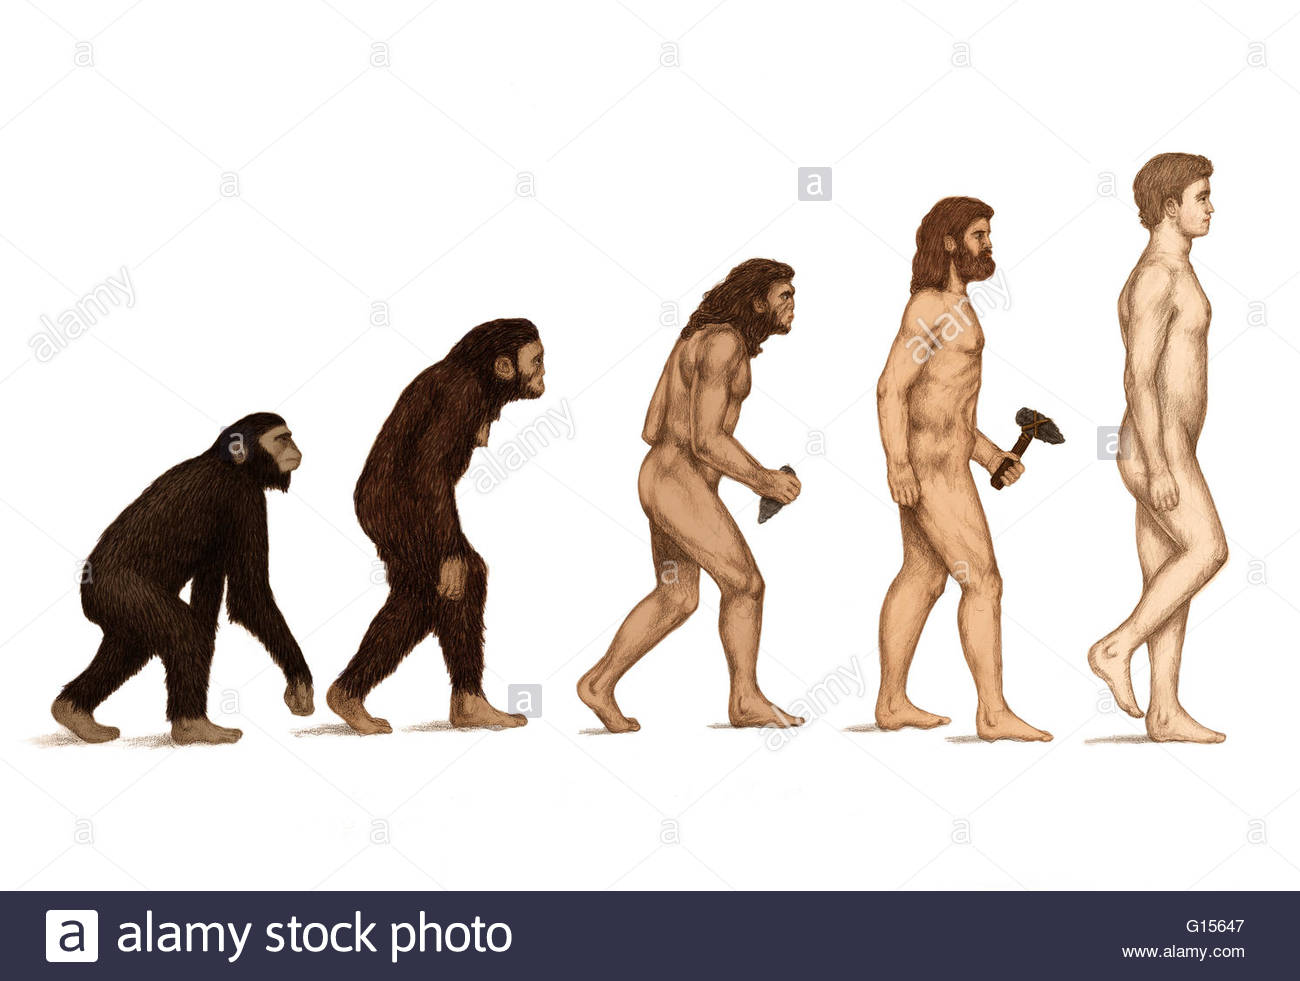 1300x981 Human Evolution. Artwork Of The Evolution Of Hominids (Male)